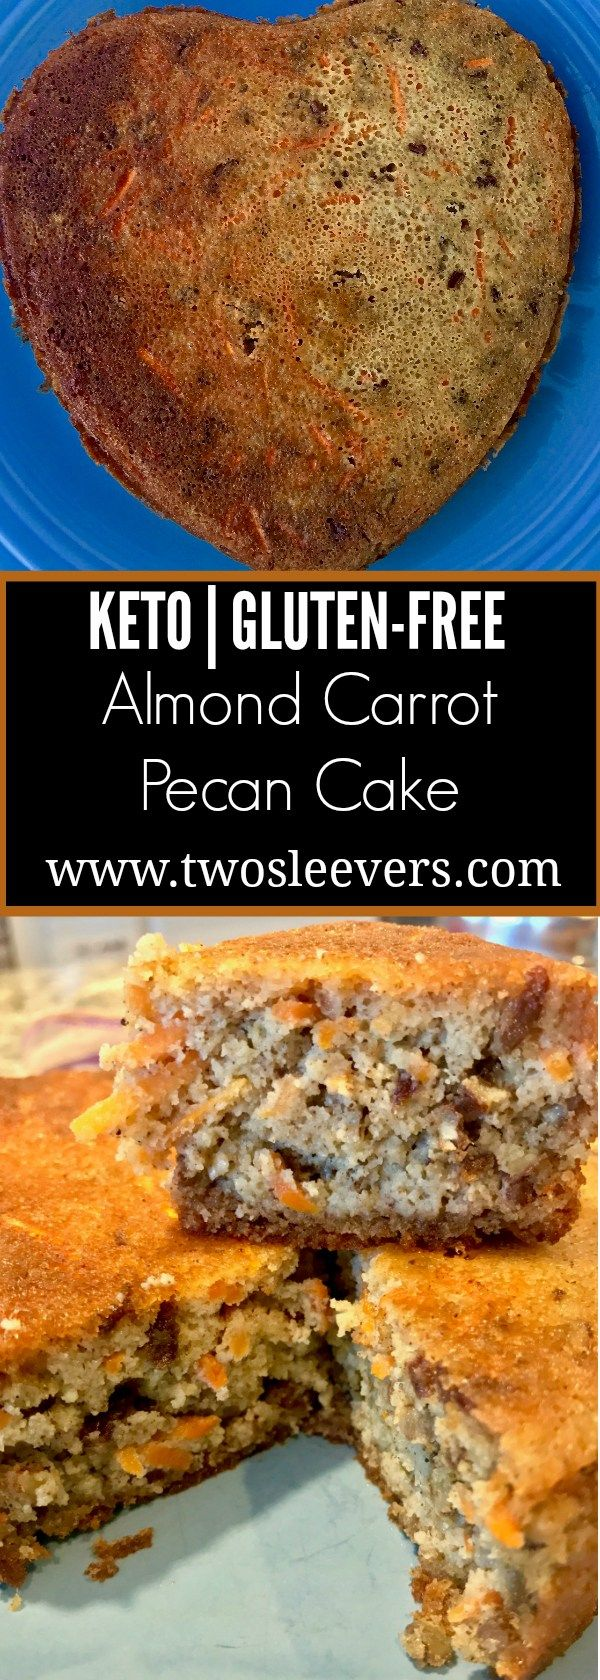 Keto Gluten-Free Almond Carrot Cake  Aunt Annette: I use this to make the carrot cake and the punkin bread cake. I use one can of pumpkin in place of the carrots. I reduce the pie spice and add cloves and cinnamon, just a little. Add a little extra sweetener. Usually I taste the batter. Same buttercream frosting except i put toasted pecans on the pumpkin bread cake and toasted coconut on the carrot cake. You can cook the cakes in the instant pot, too.